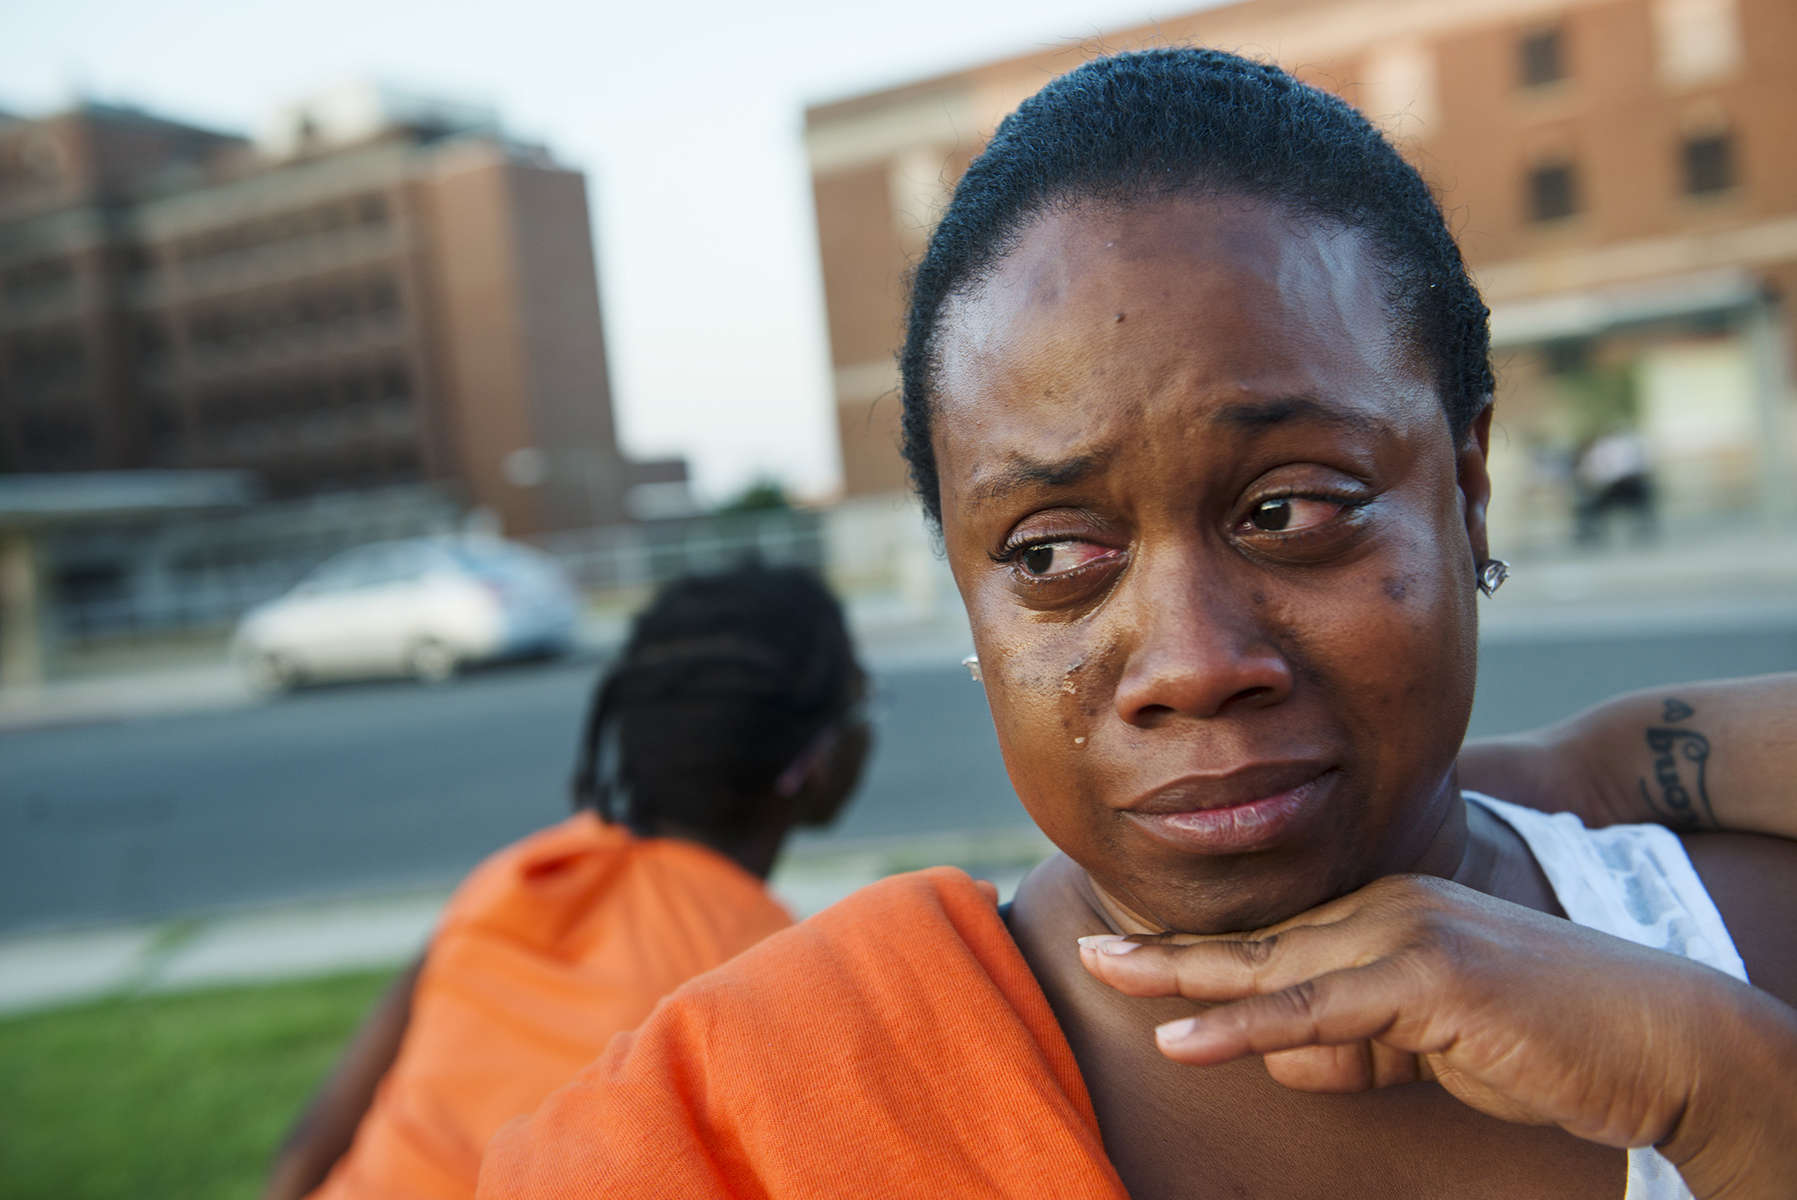 WASHINGTON, DC - JUNE 3: Bre Archie, 35, a resident of the DC General shelter of a year and four months comes to tears while attending the {quote}Rally of Respect{quote}  outside of the facility on Tuesday, June 3, 2014 in Washington, DC.   Residents and advocates outside the shelter came together to shine a light on the unhealthy conditions and safety concerns, including the disappearance of Relisha Rudd at the facility. Archie said she was frustrated with the shelter policies stating, {quote}Whenever I try to take two steps forward they are pulling me backward.  I am trying to go to school and they won't let my boyfriend come into the shelter to stay to watch my kids.{quote}  She added, There is no affordable housing in DC. If they close this building tomorrow, where is all these people going to go?{quote}    (Photo by Amanda Voisard/For the Washington Post)